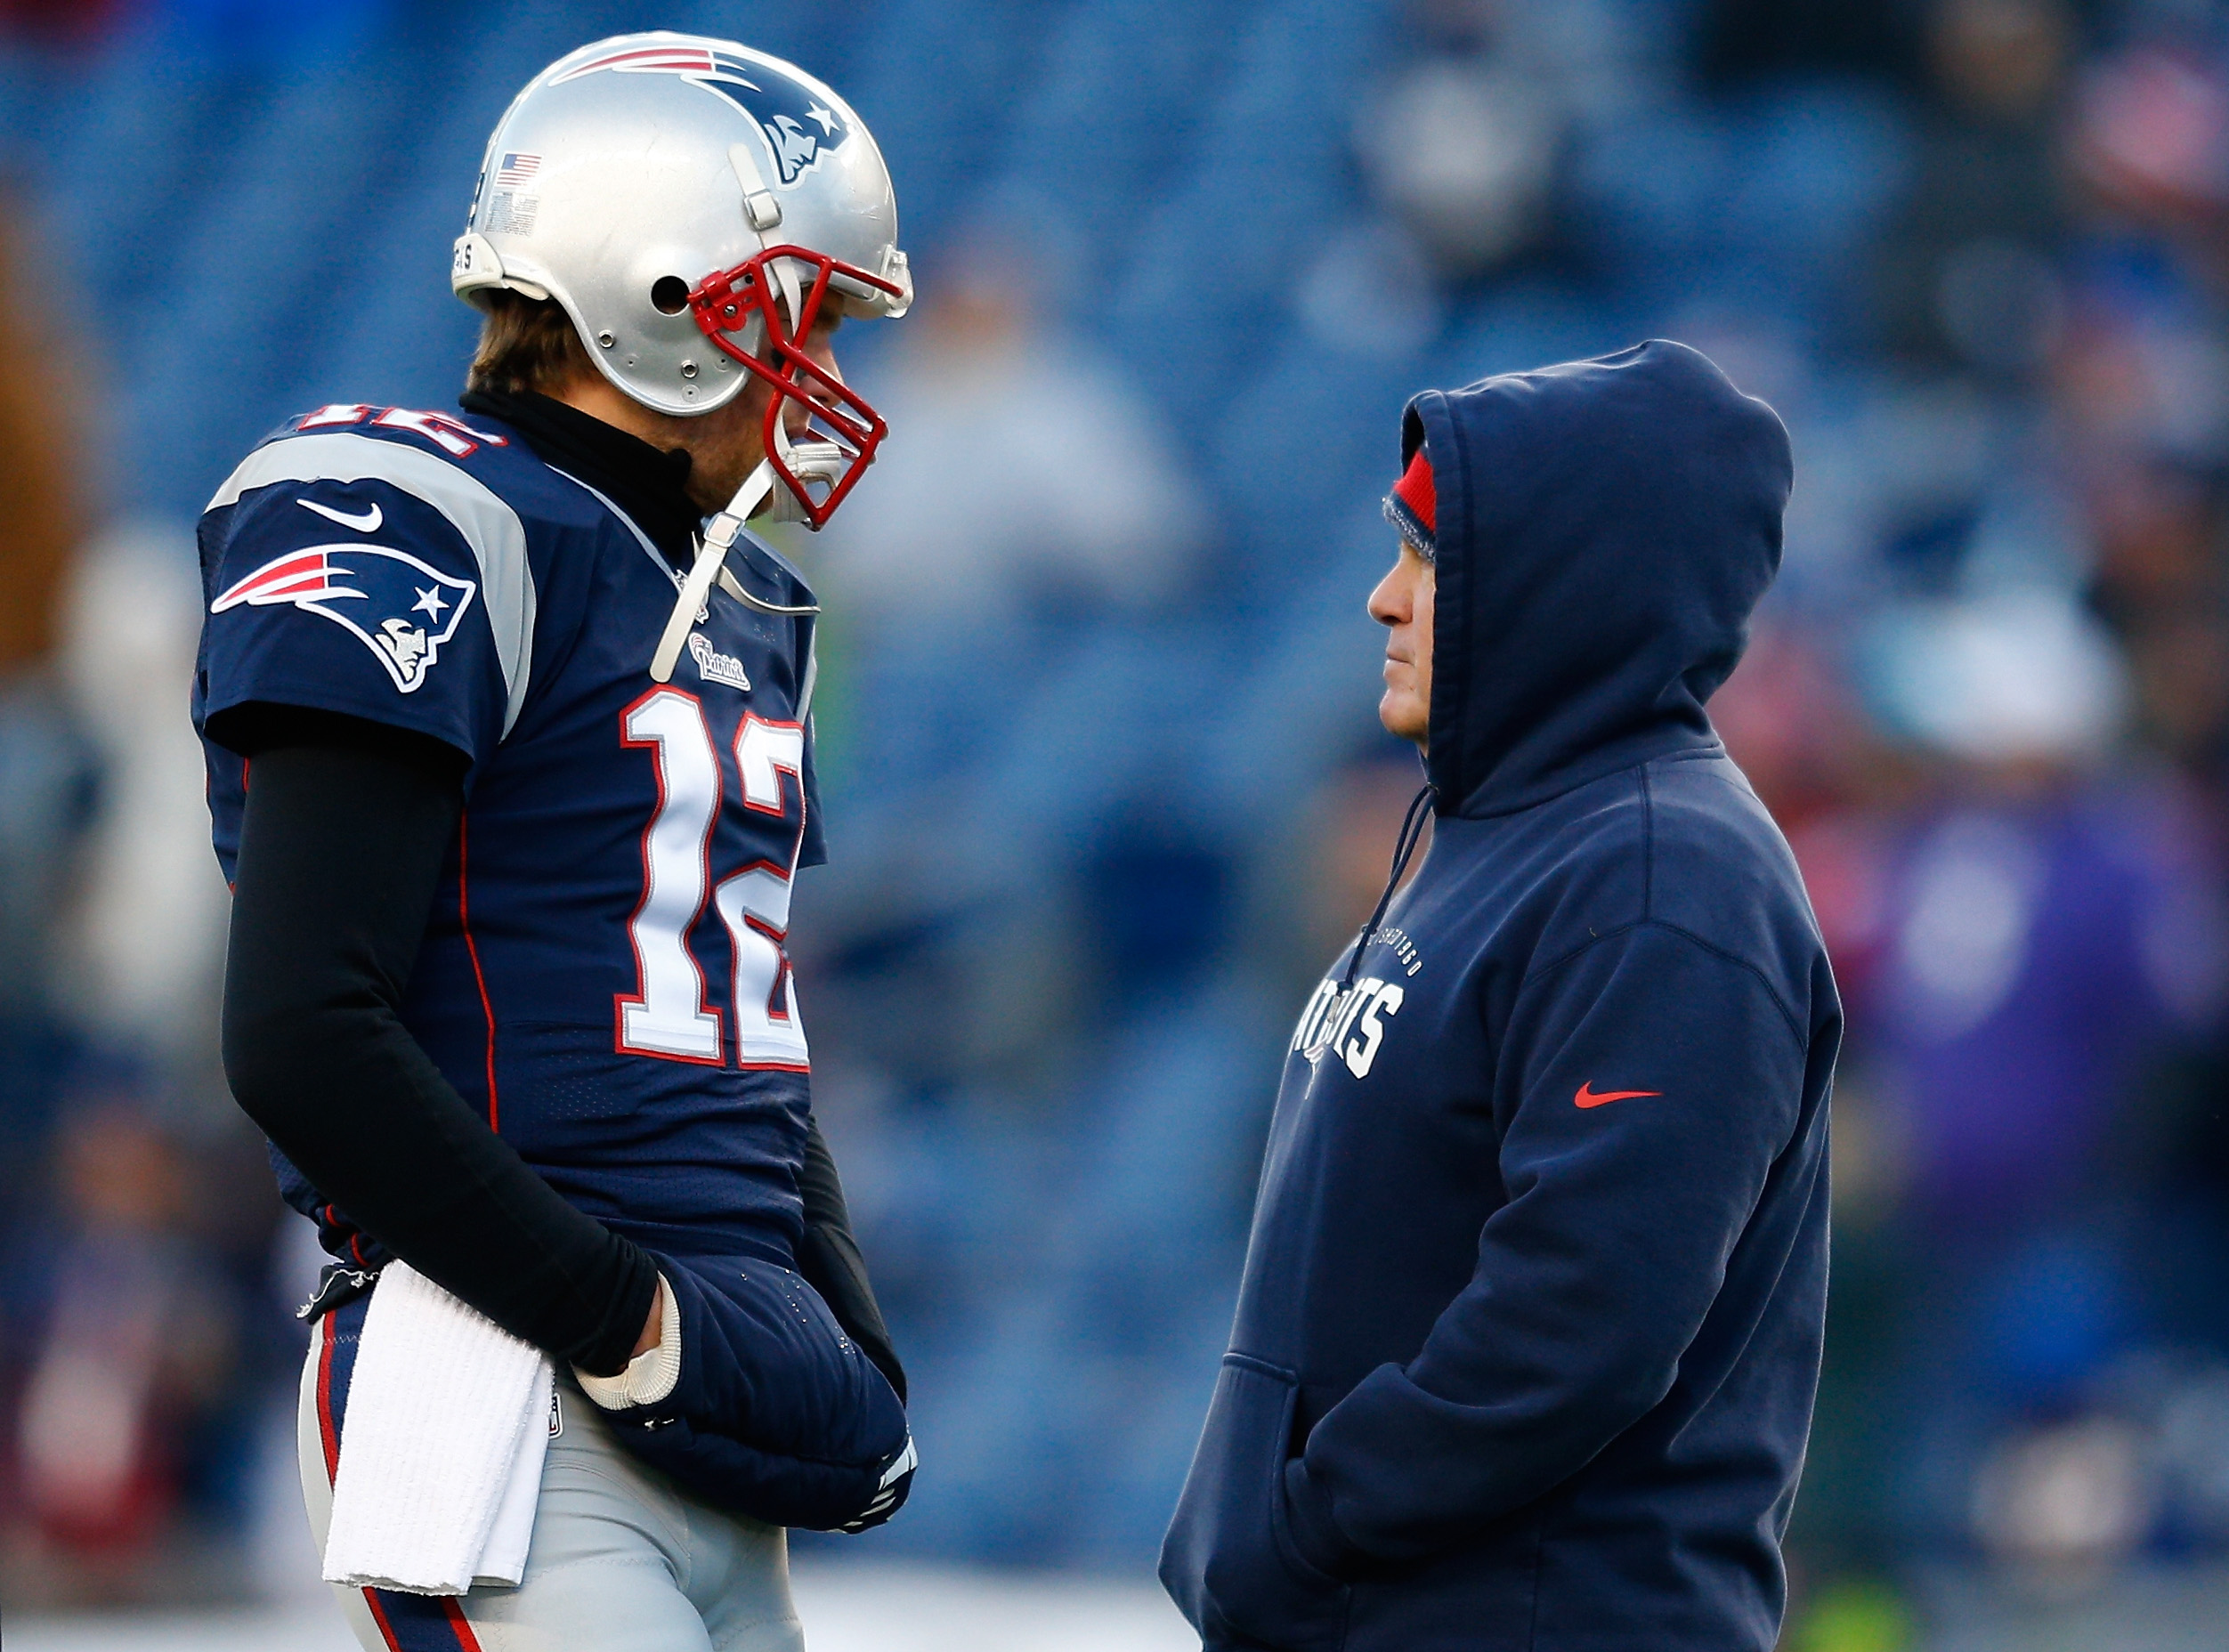 Tom Brady #12 and head coach Bill Belichick of the New England Patriots talk before the 2014 AFC Divisional Playoffs game against the Baltimore Ravens at Gillette Stadium on January 10, 2015 in Foxboro, Massachusetts